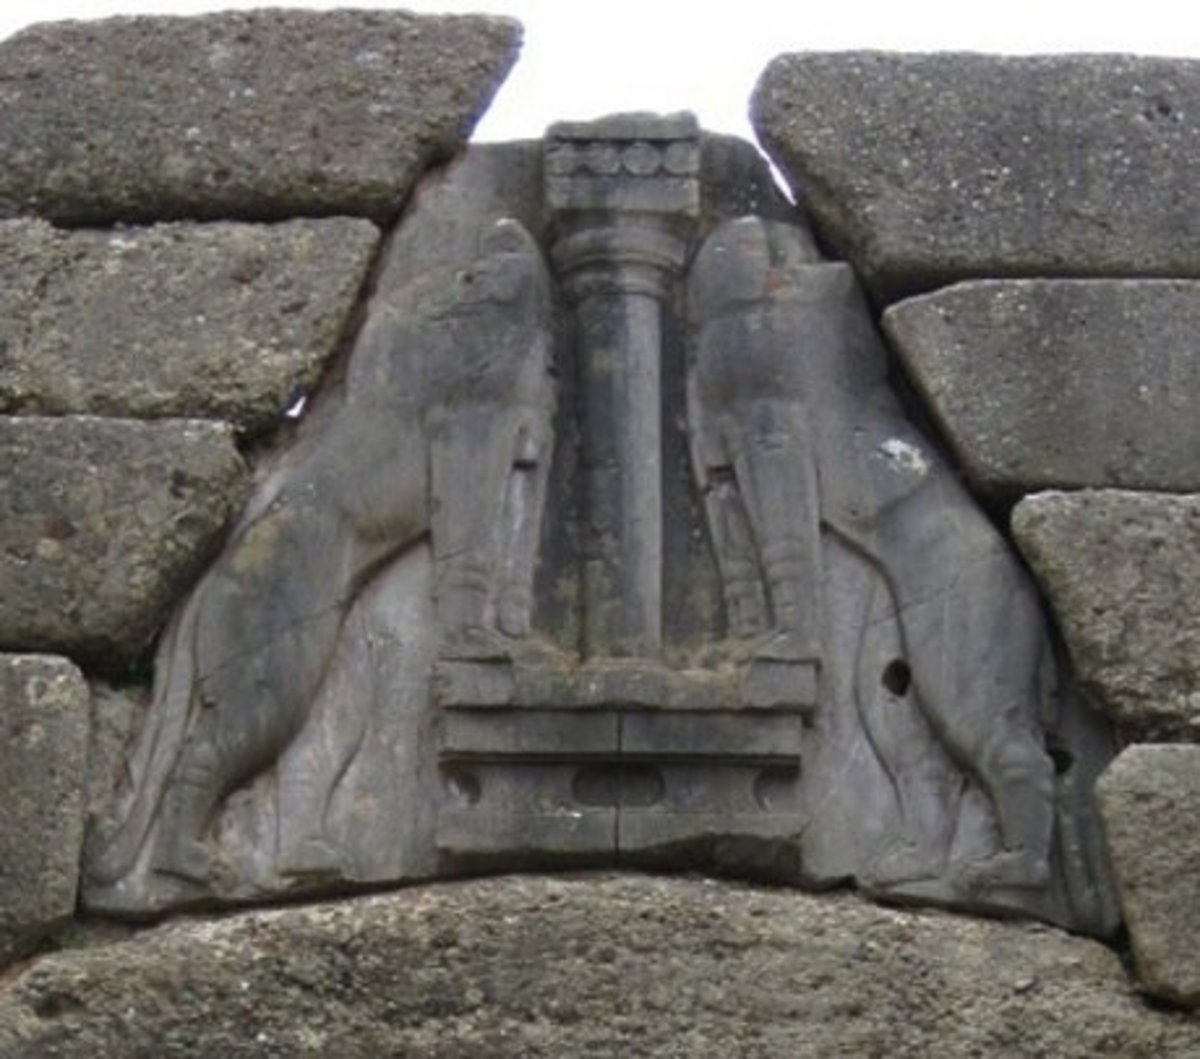 Detail of the monumental Lion's Gate in Mycenae at what is called Agamemnon's Palace